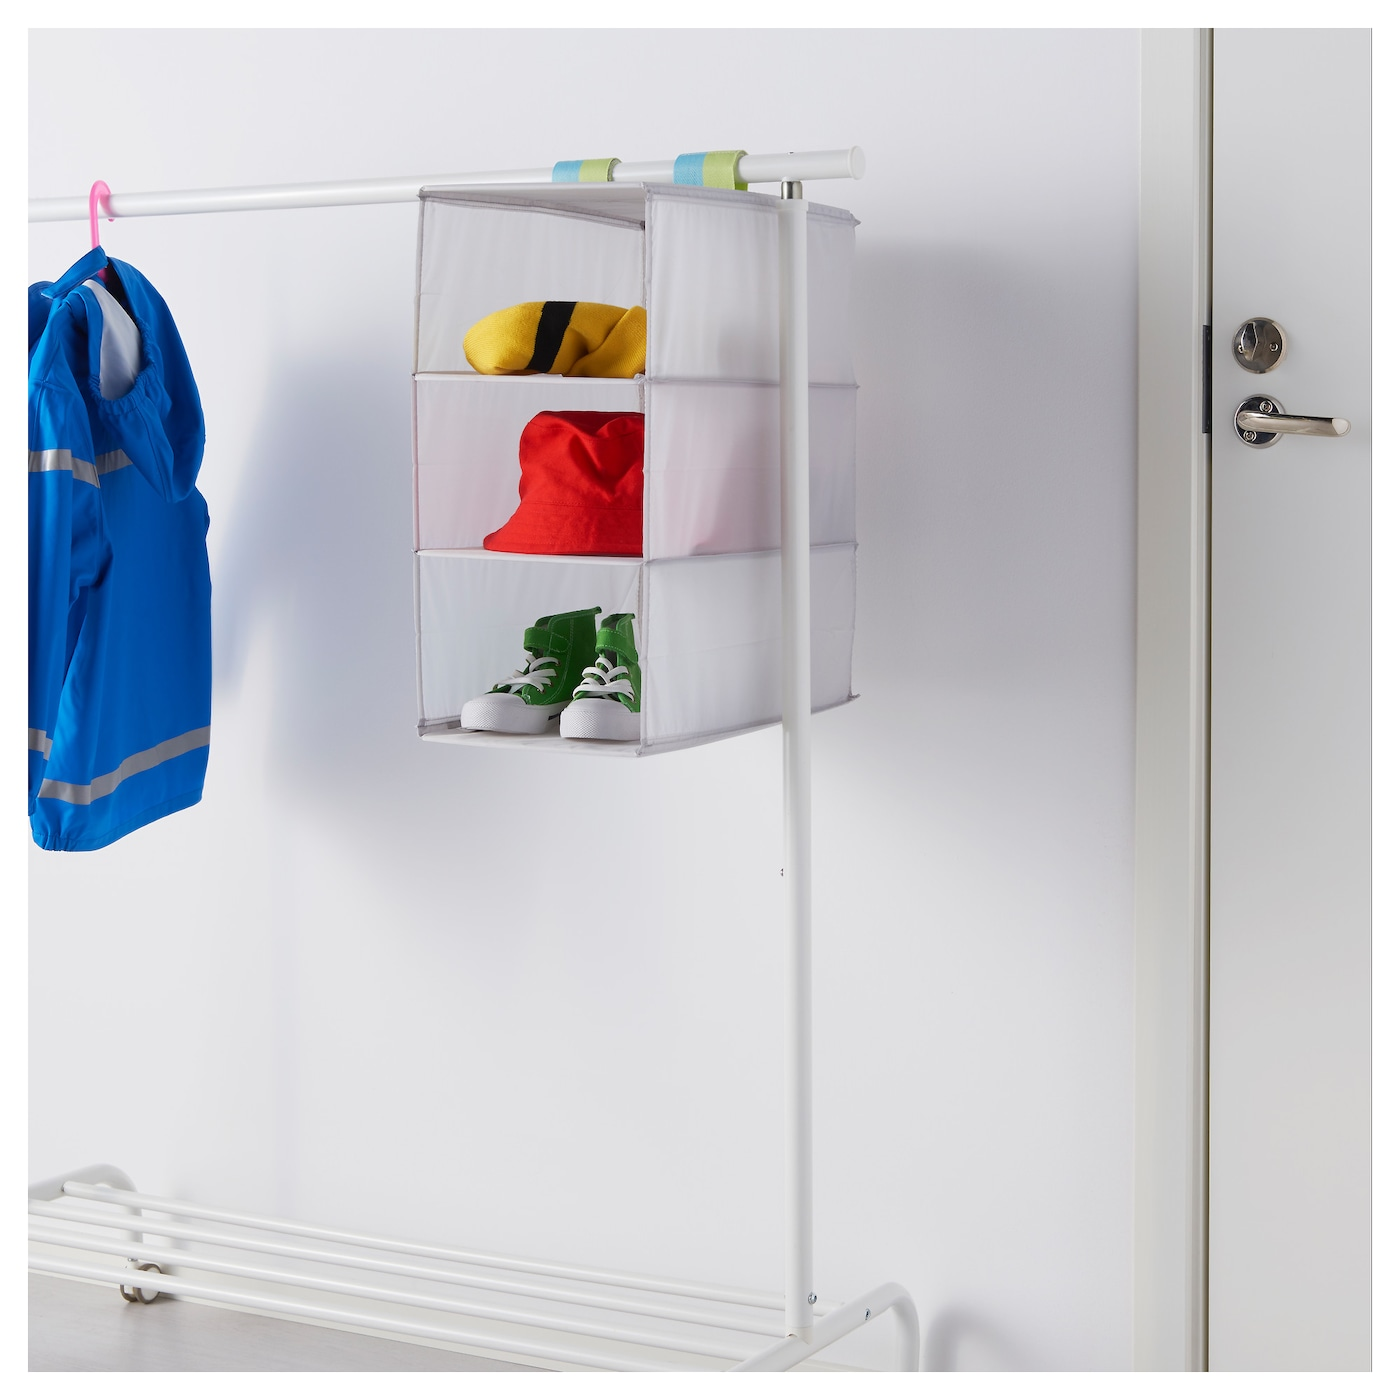 IKEA SLÄKTING storage with 3 compartments Can be folded to save space when not in use.